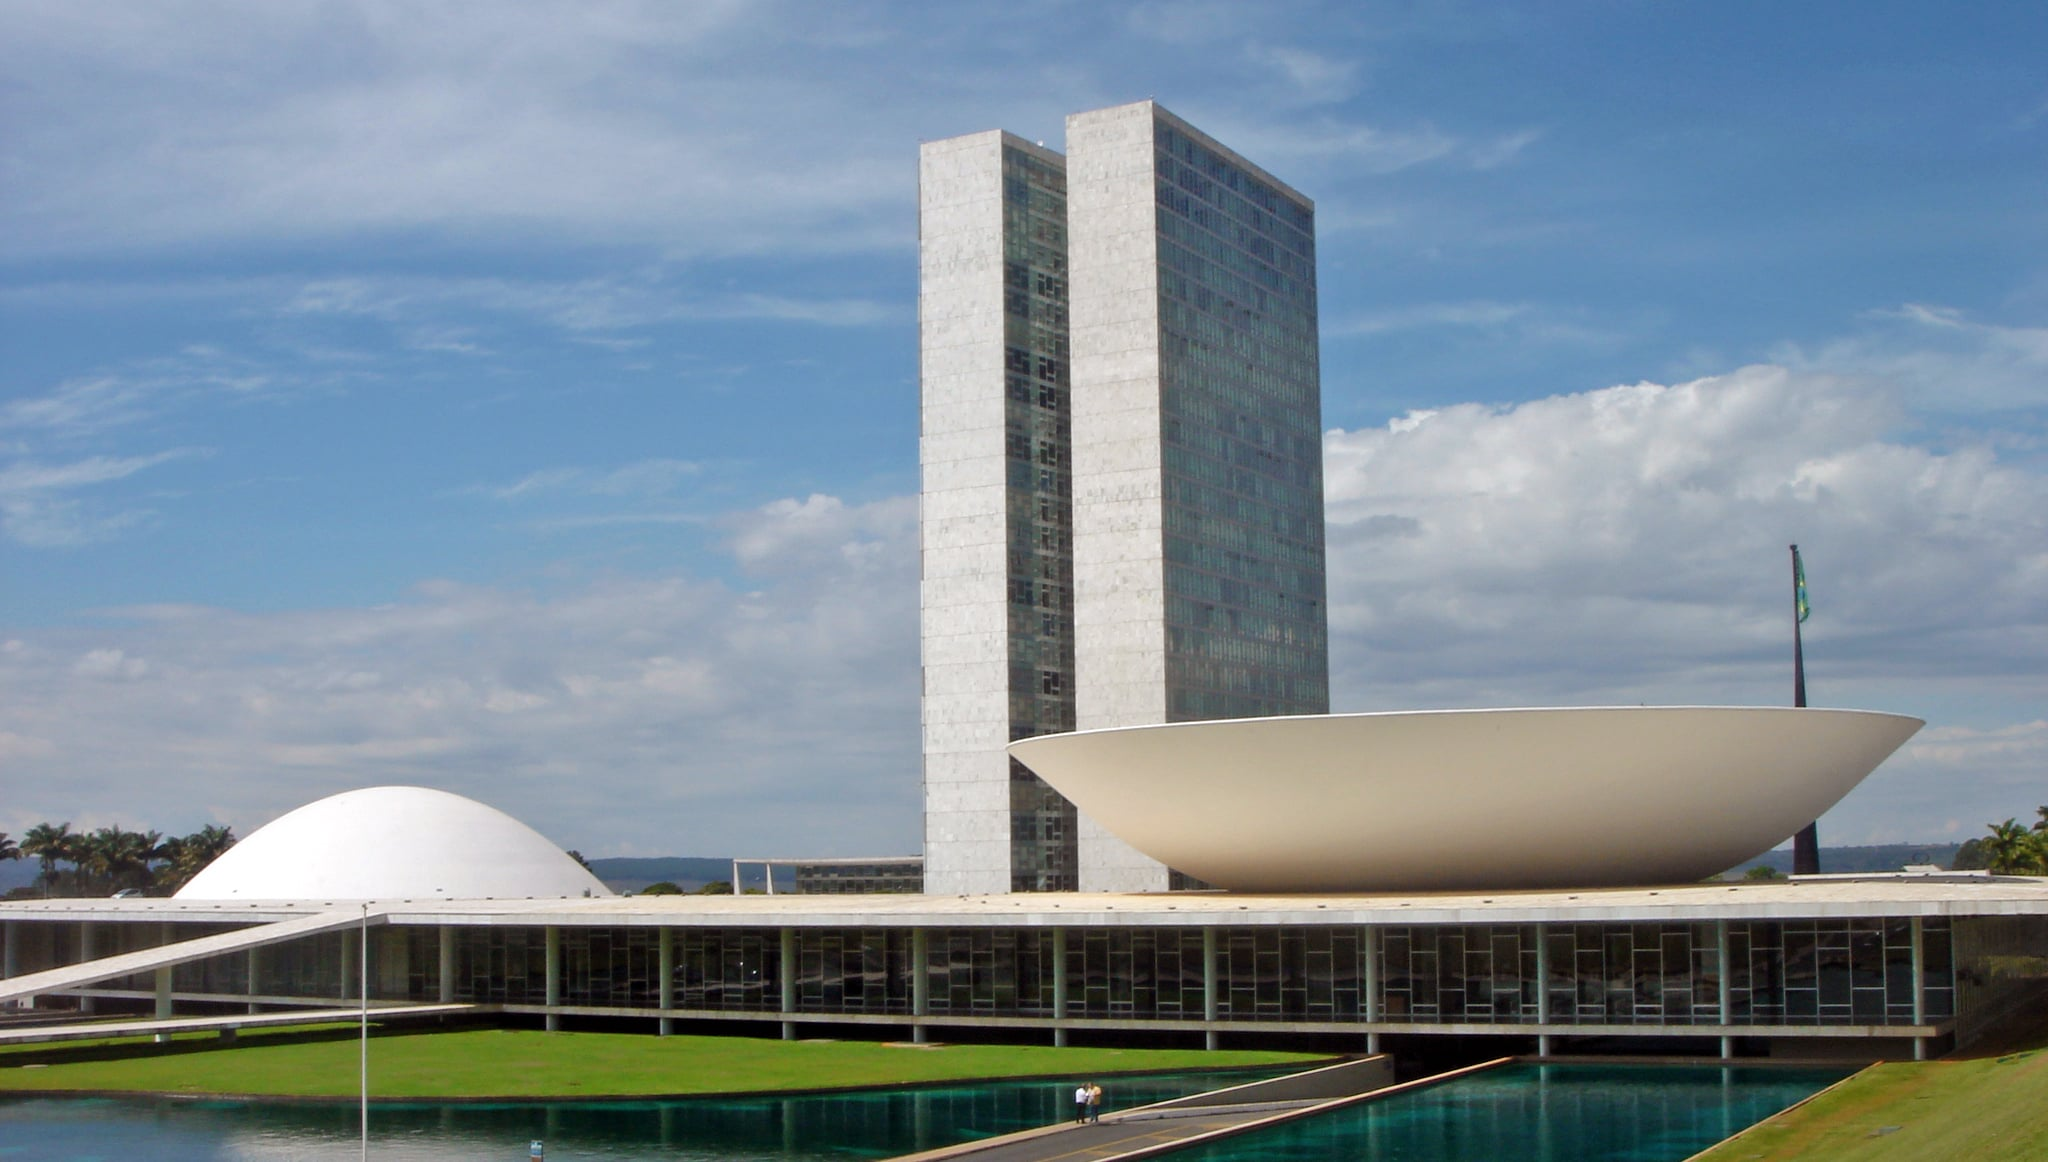 Economic relations with China are key for Brazil - but not for Bolsonaro